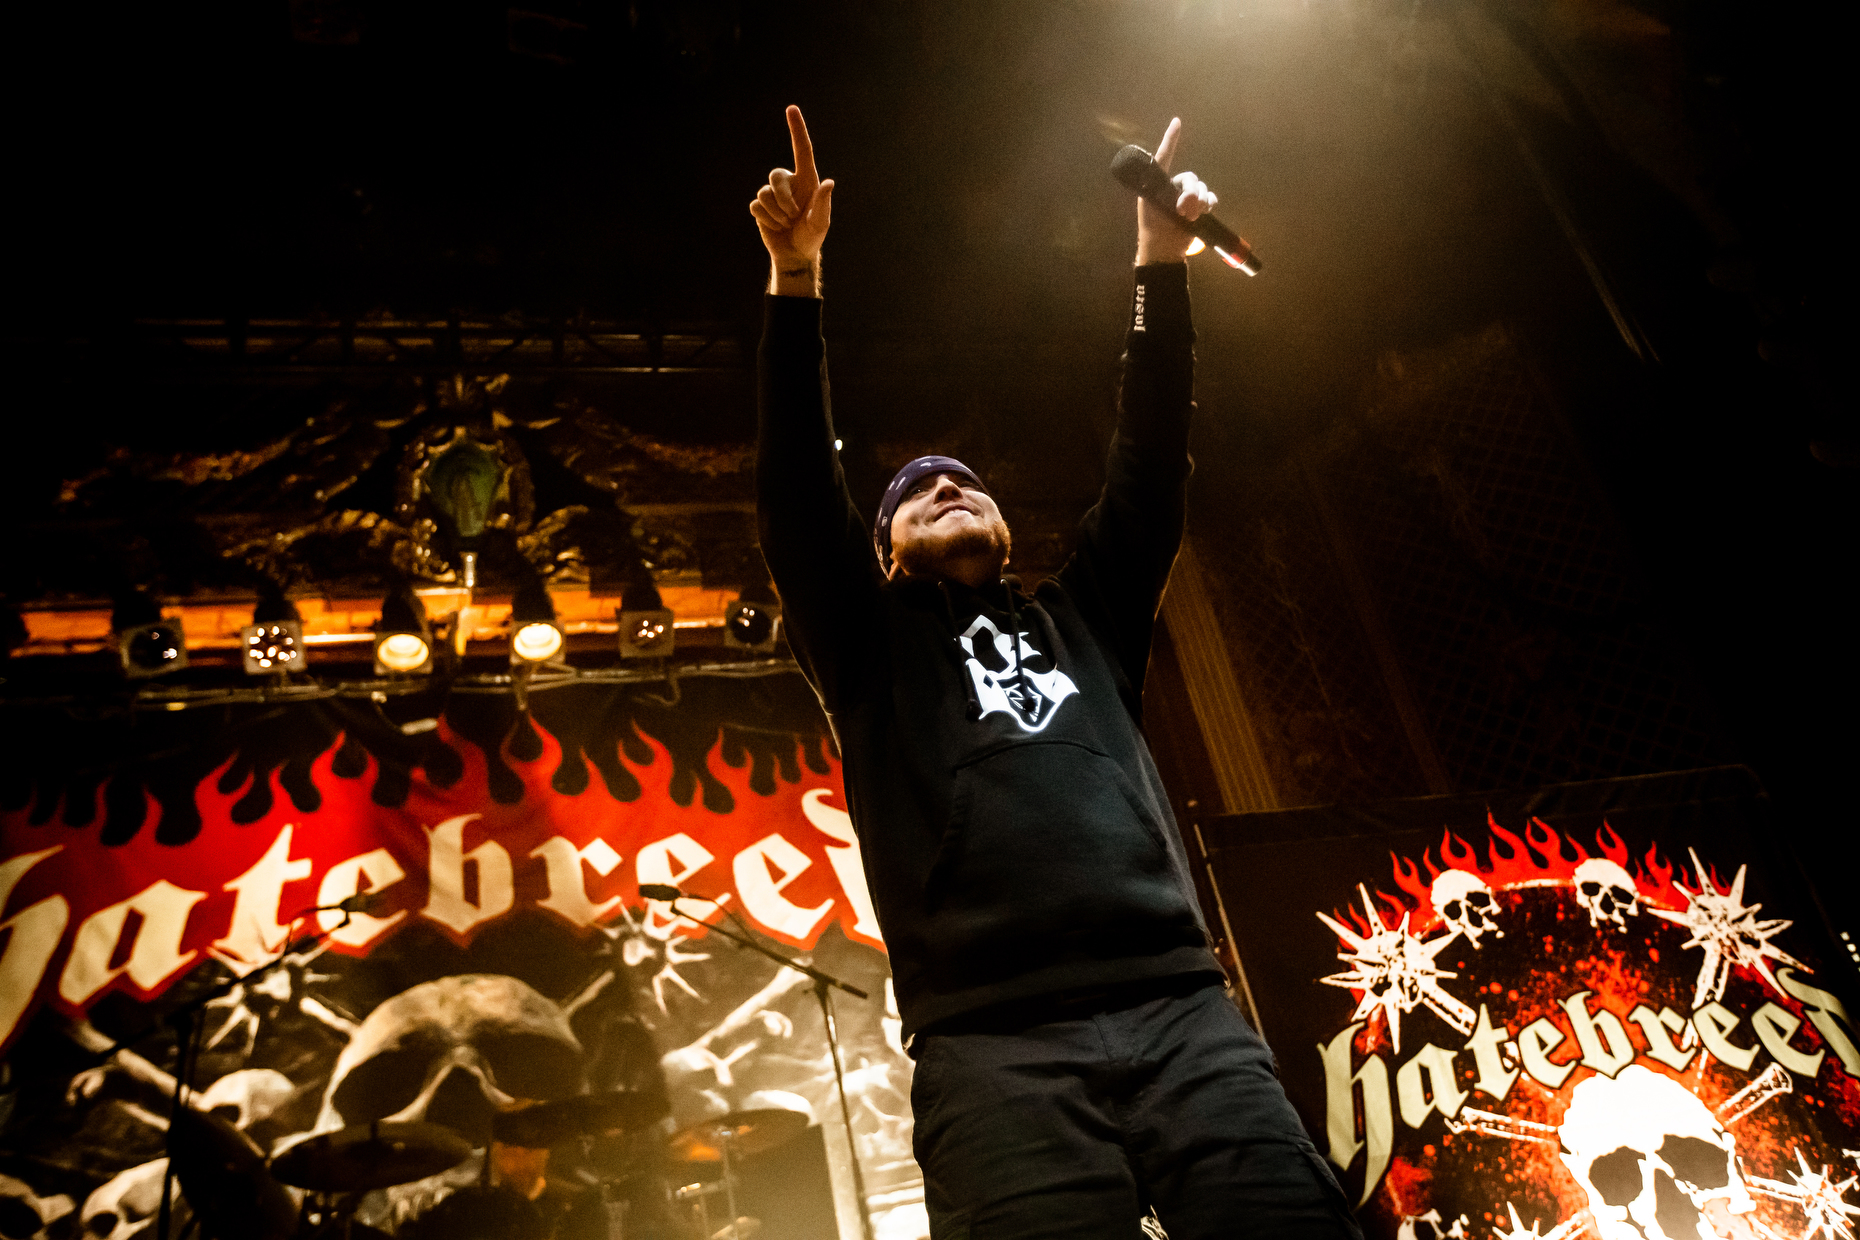 HATEBREED0009.JPG